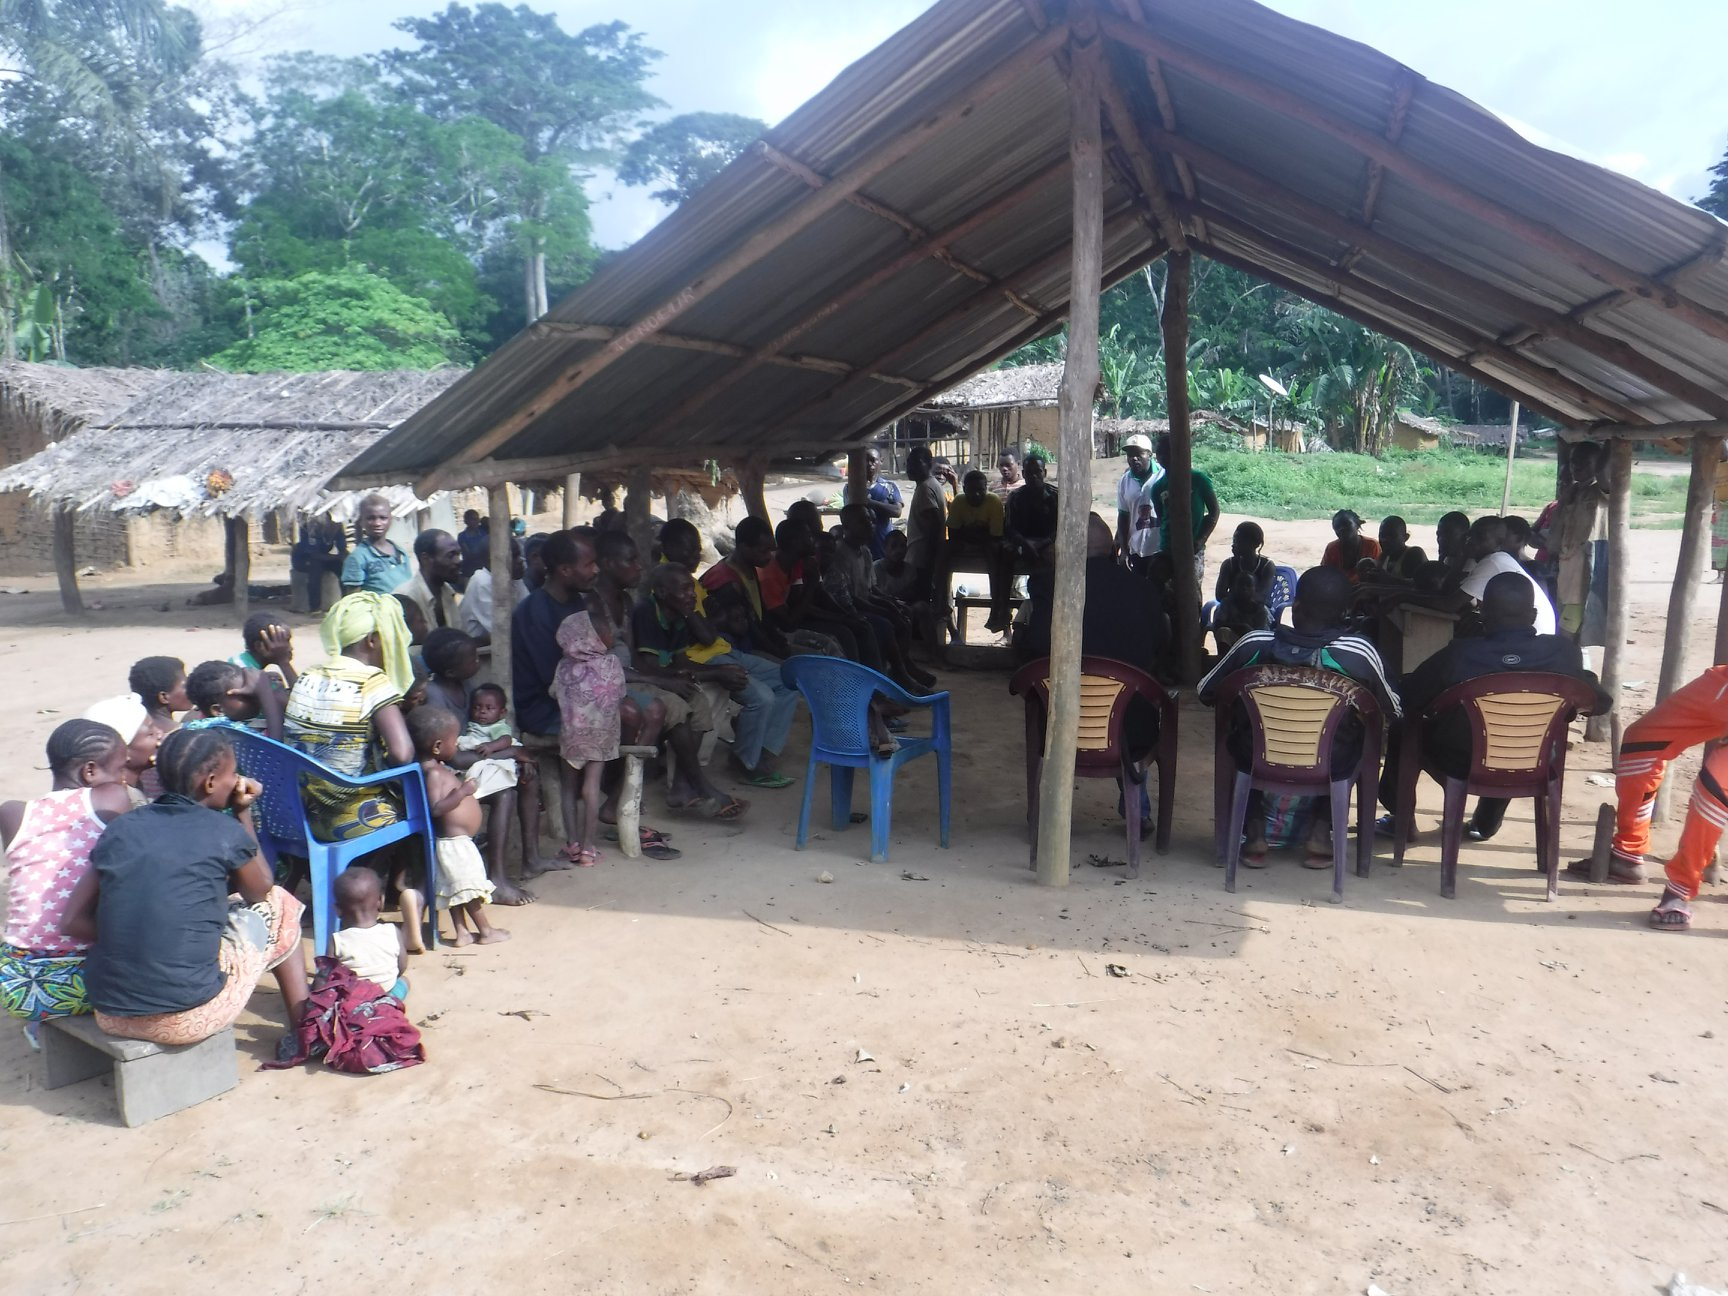 Lack of food and safety for refugees in Nigeria